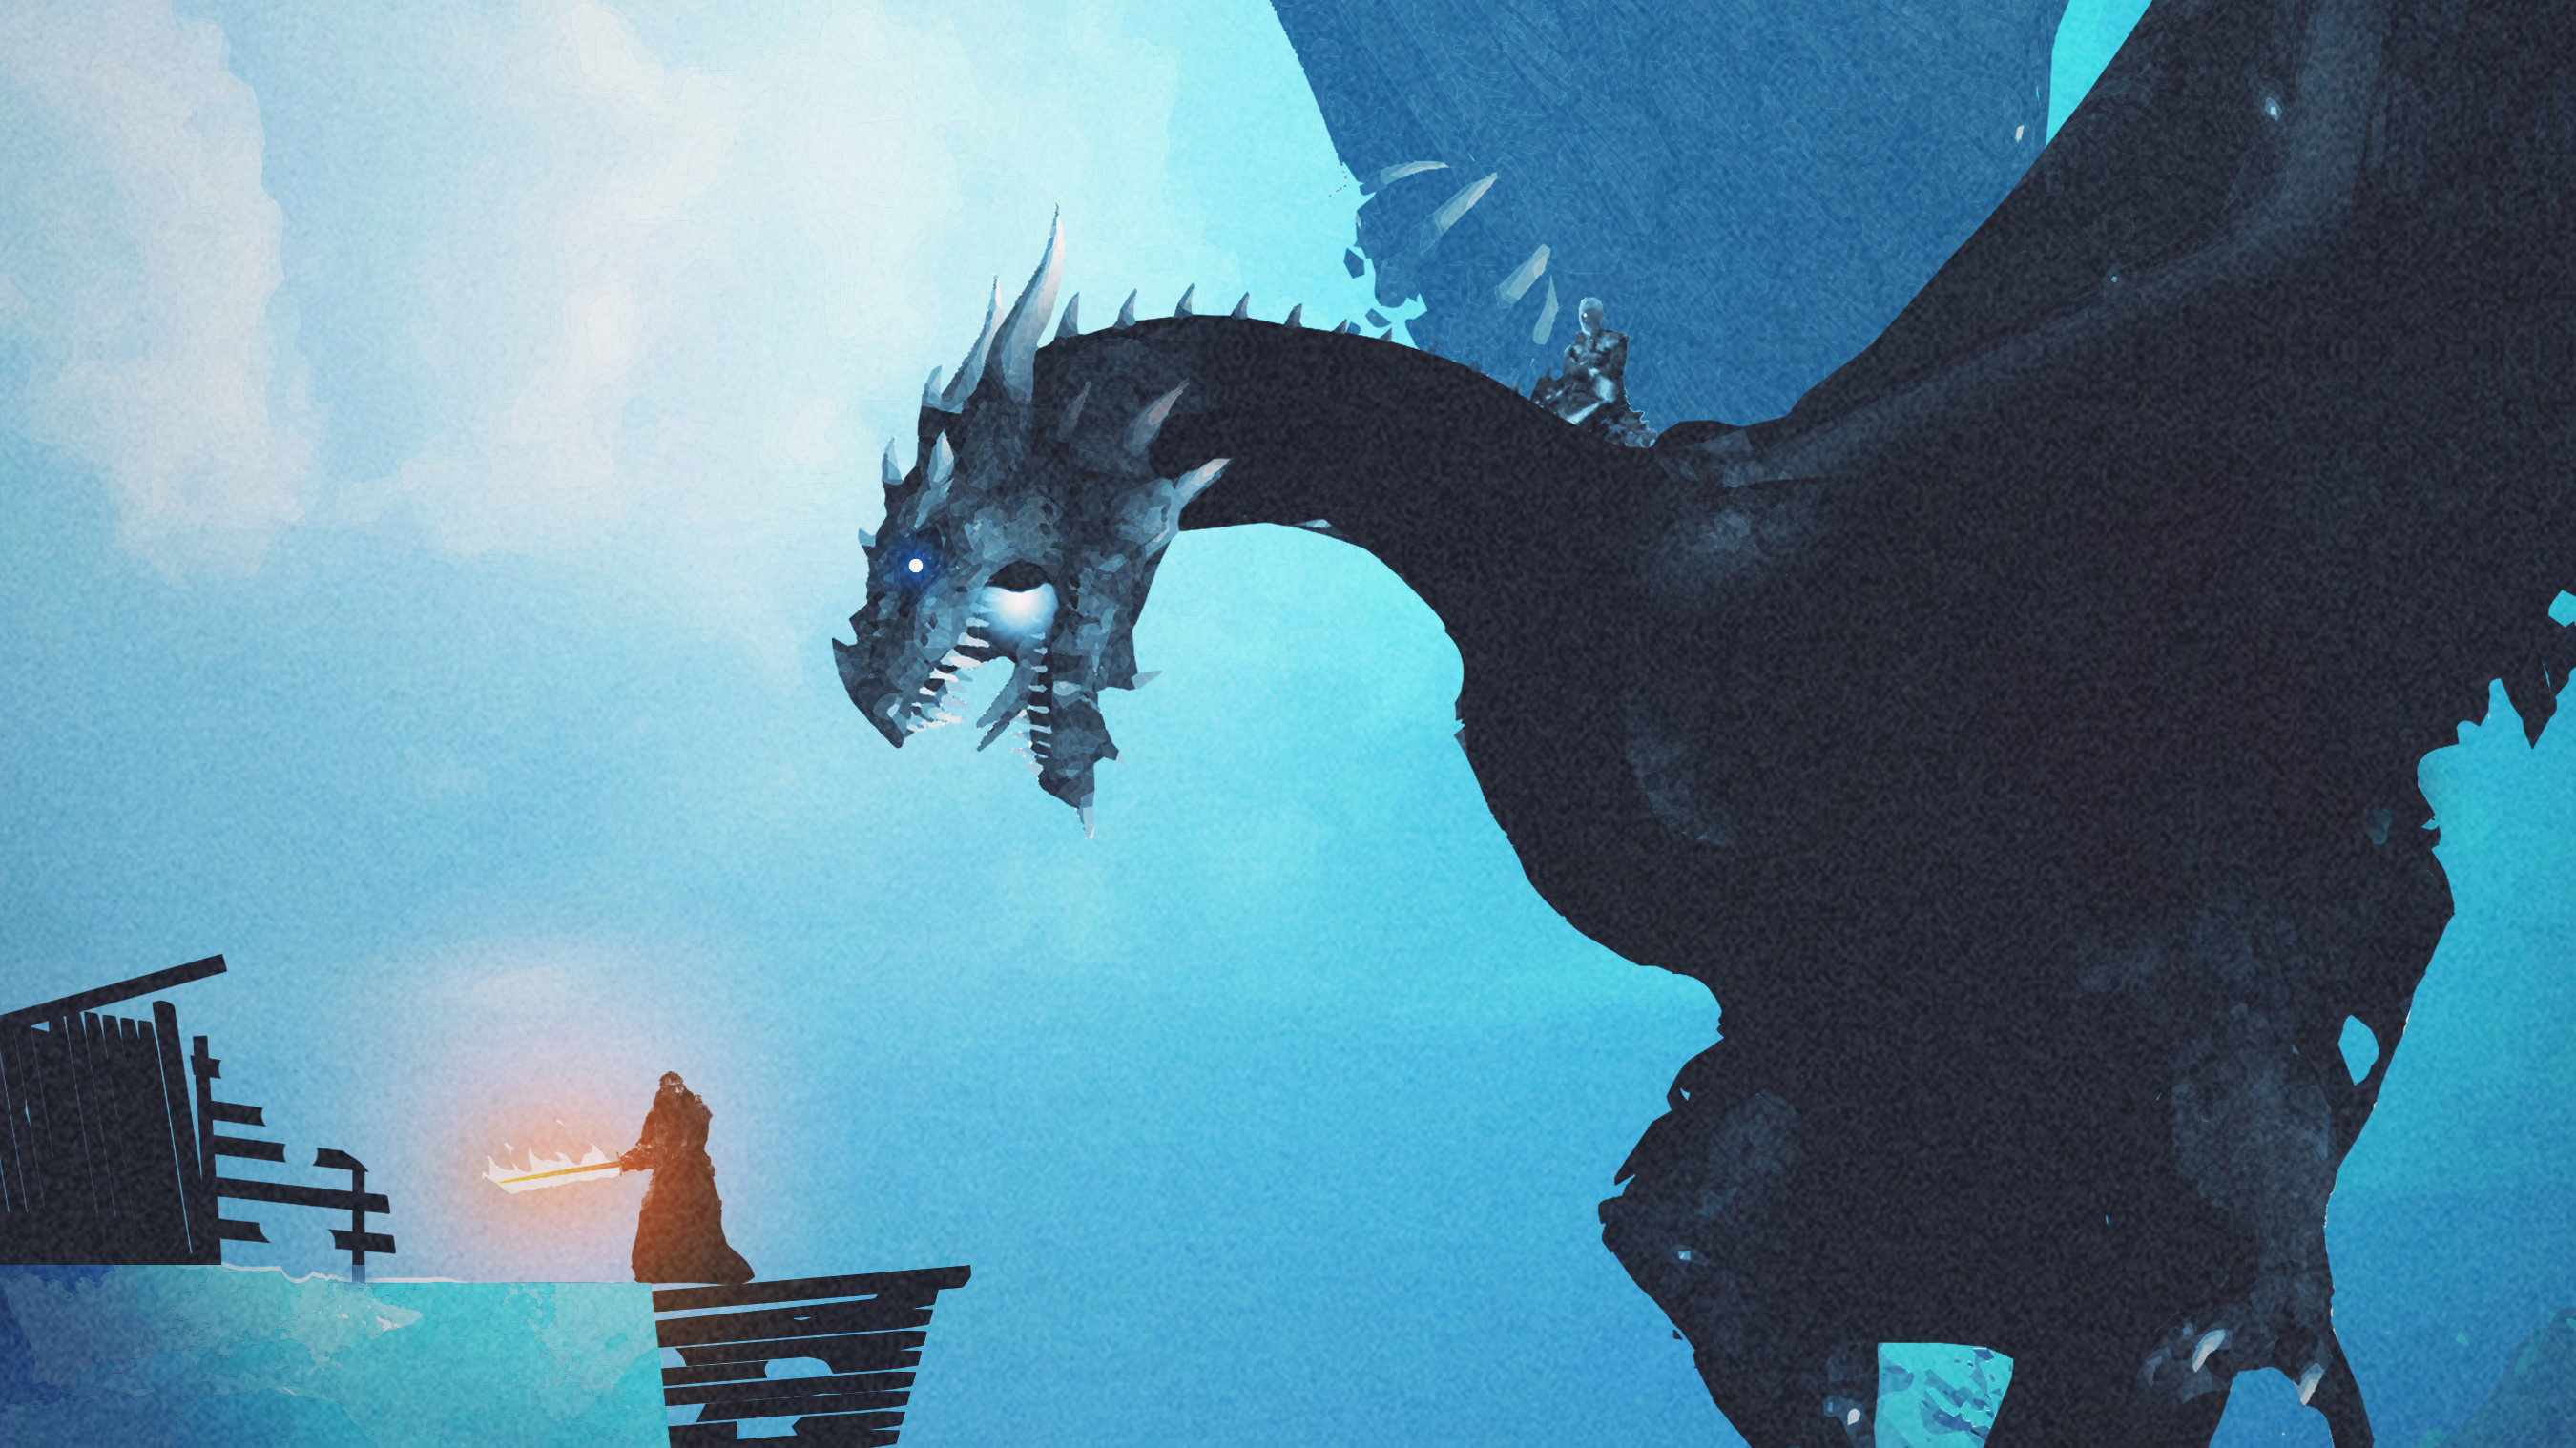 Night King Dragon Vs Lord Of Light, HD Tv Shows, 4k